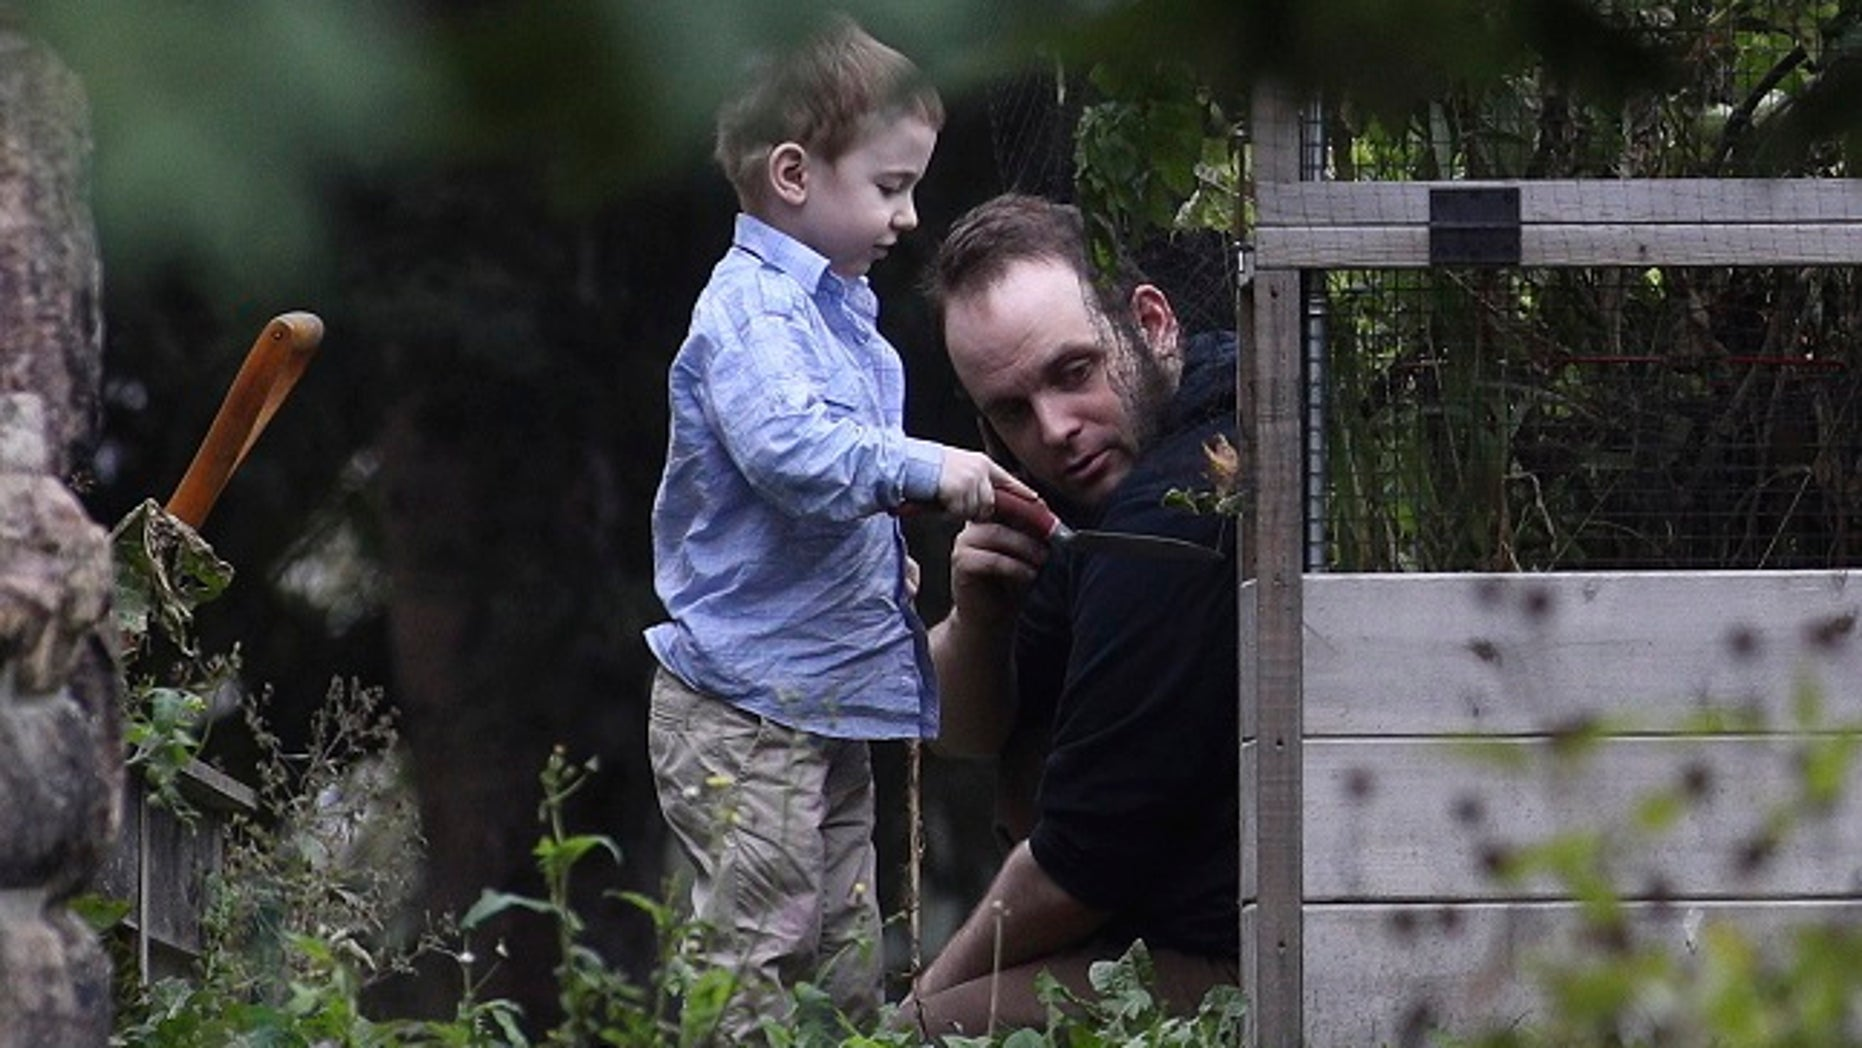 Joshua Boyle and his son Jonah play in the garden at his parent's house in Smiths Falls, Ontario, on Saturday, Oct. 14, 2017.